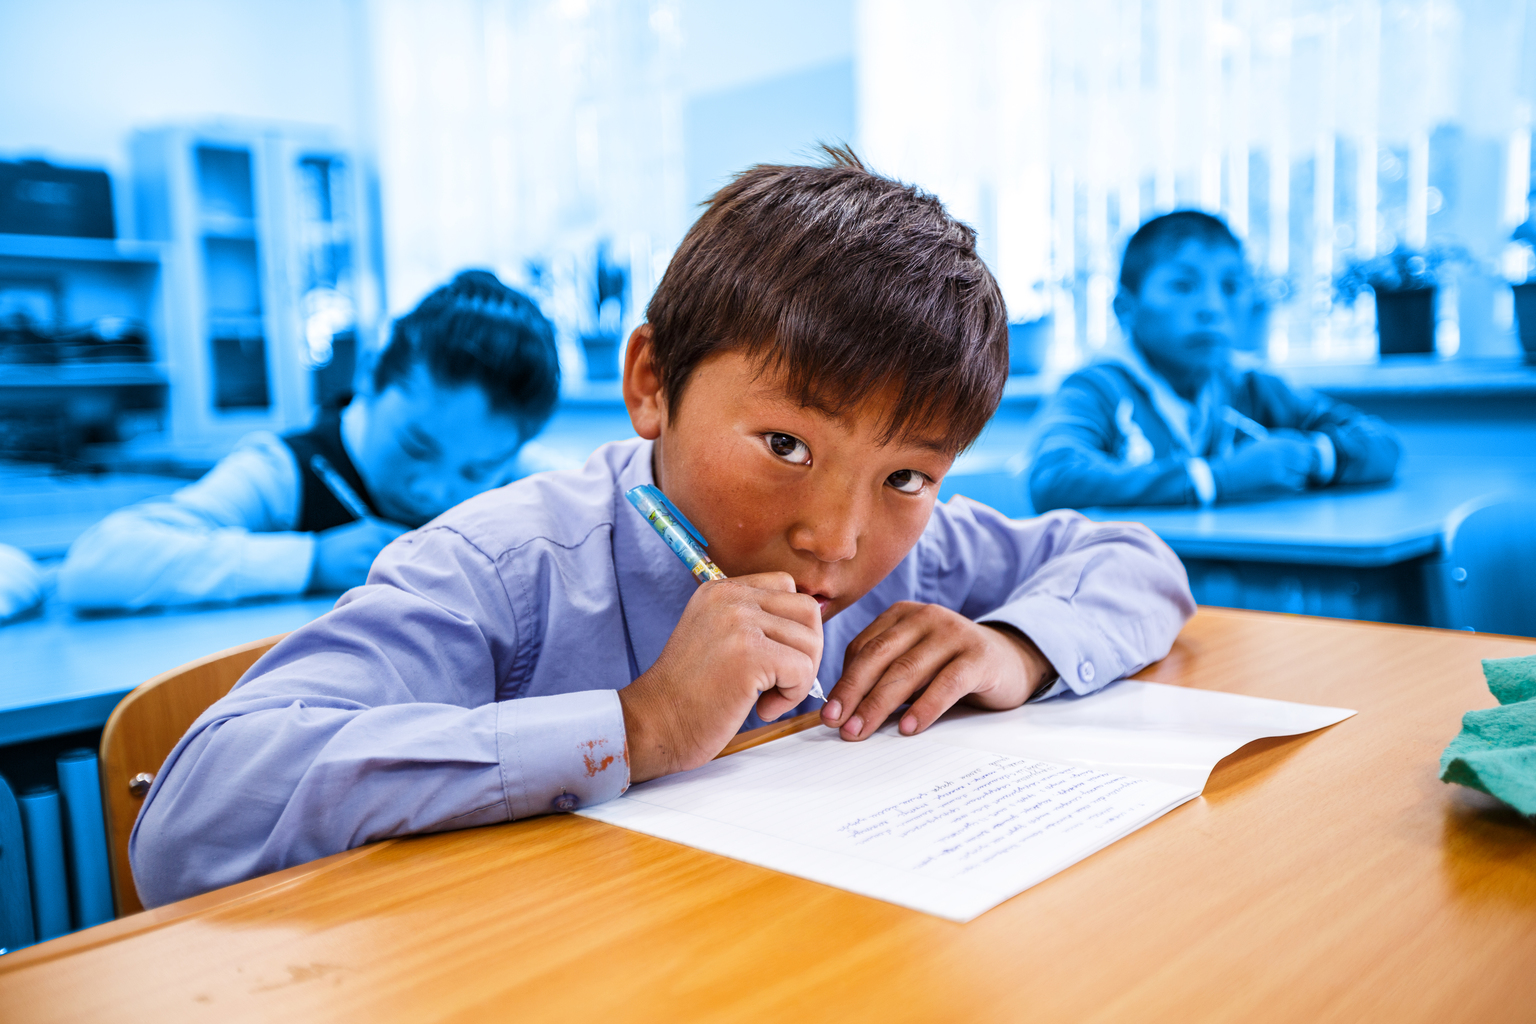 A boy looks the camera as he diligently writes down notes during class in Mongolia